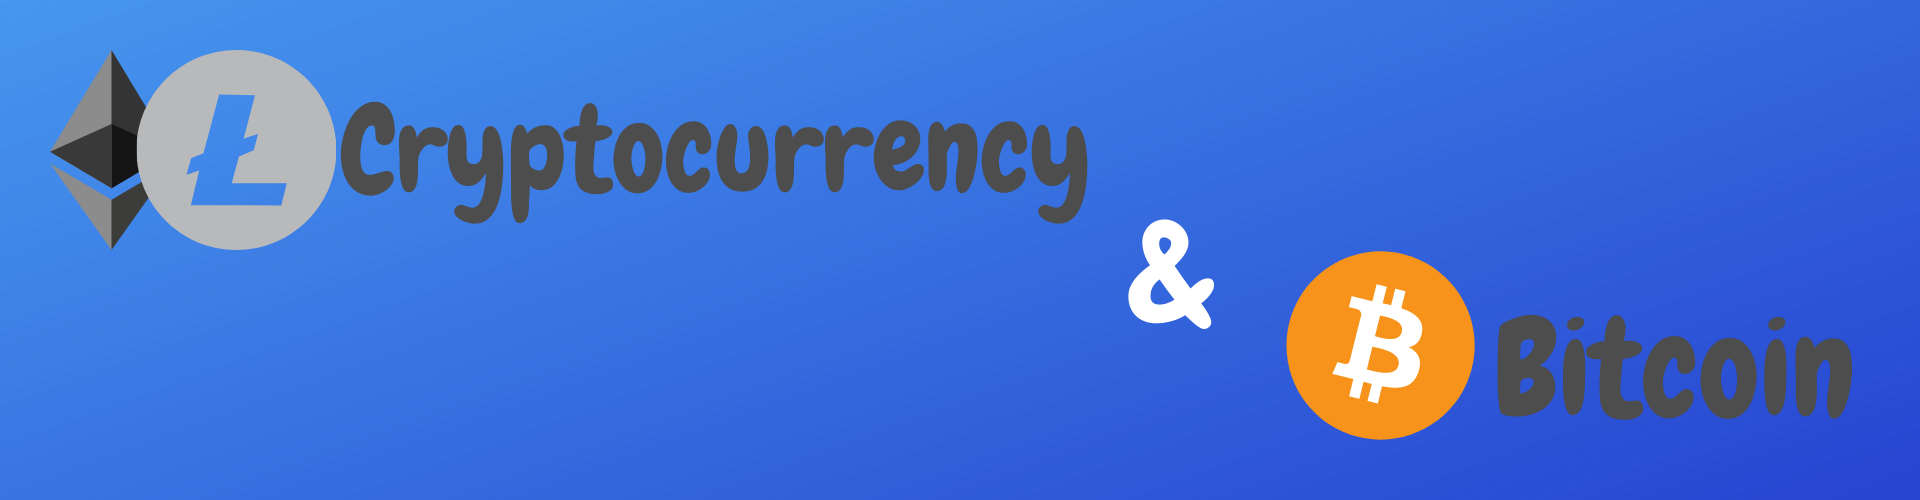 Cryptocurrency-the future of money